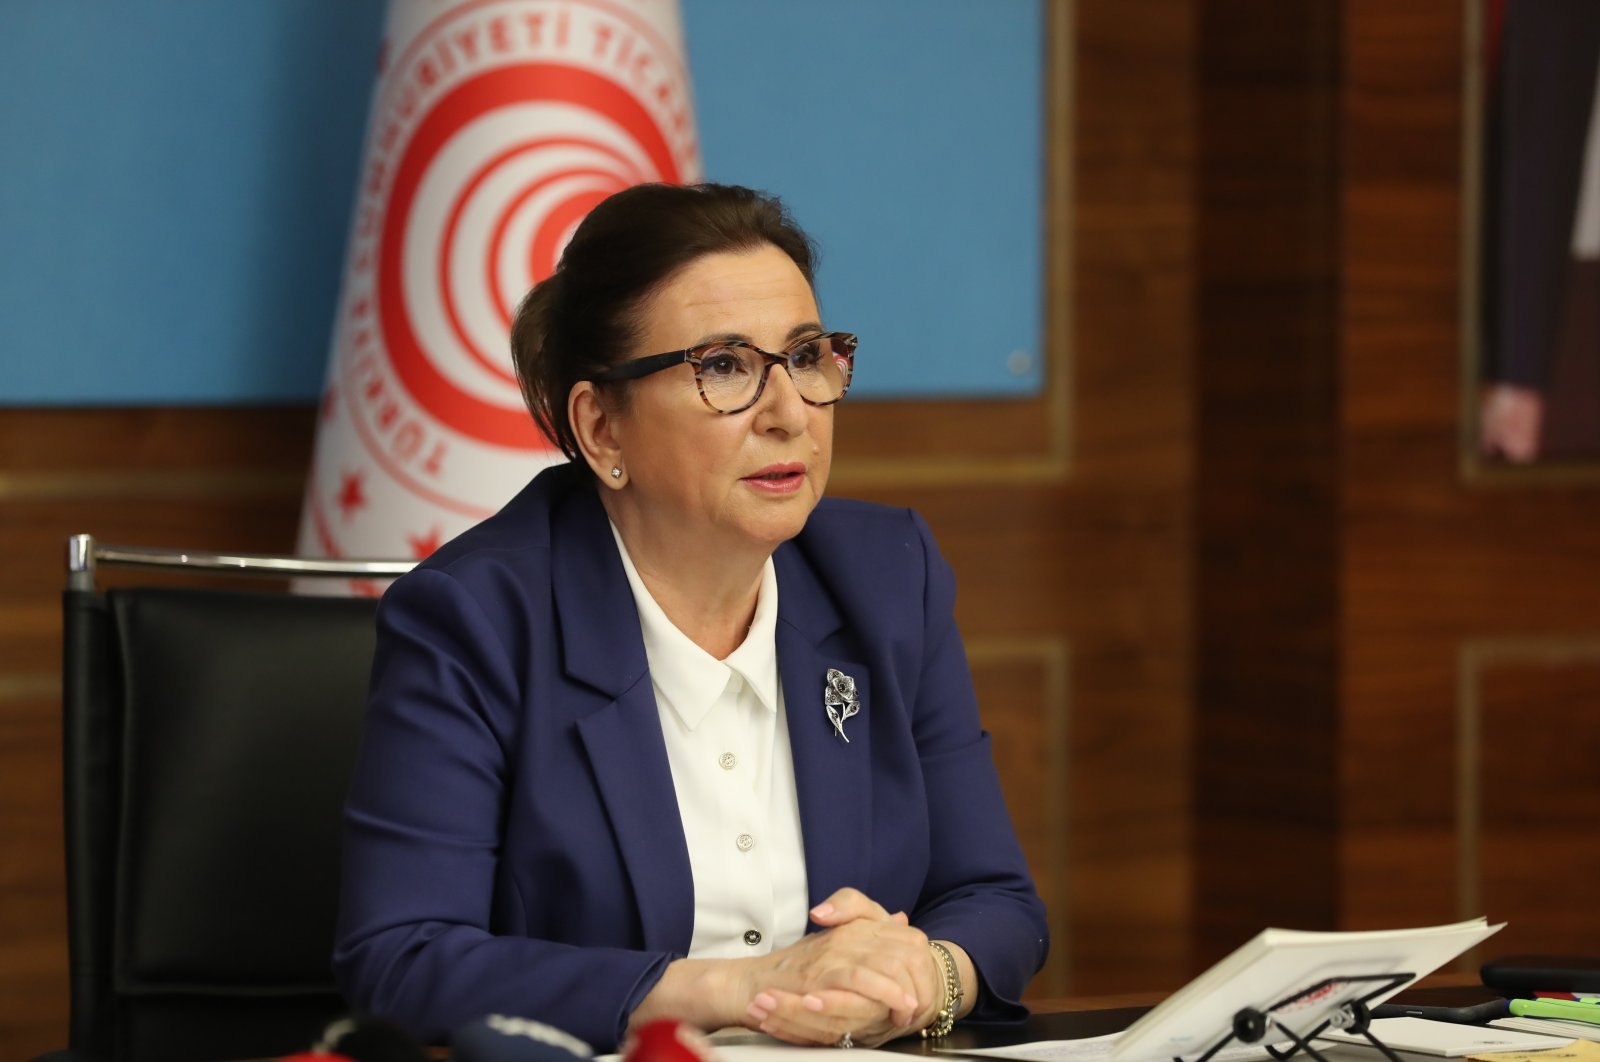 Turkey's Trade Minister Ruhsar Pekcan in a videoconference with EU countries' ambassadors, May 14, 2020. (AA Photo)